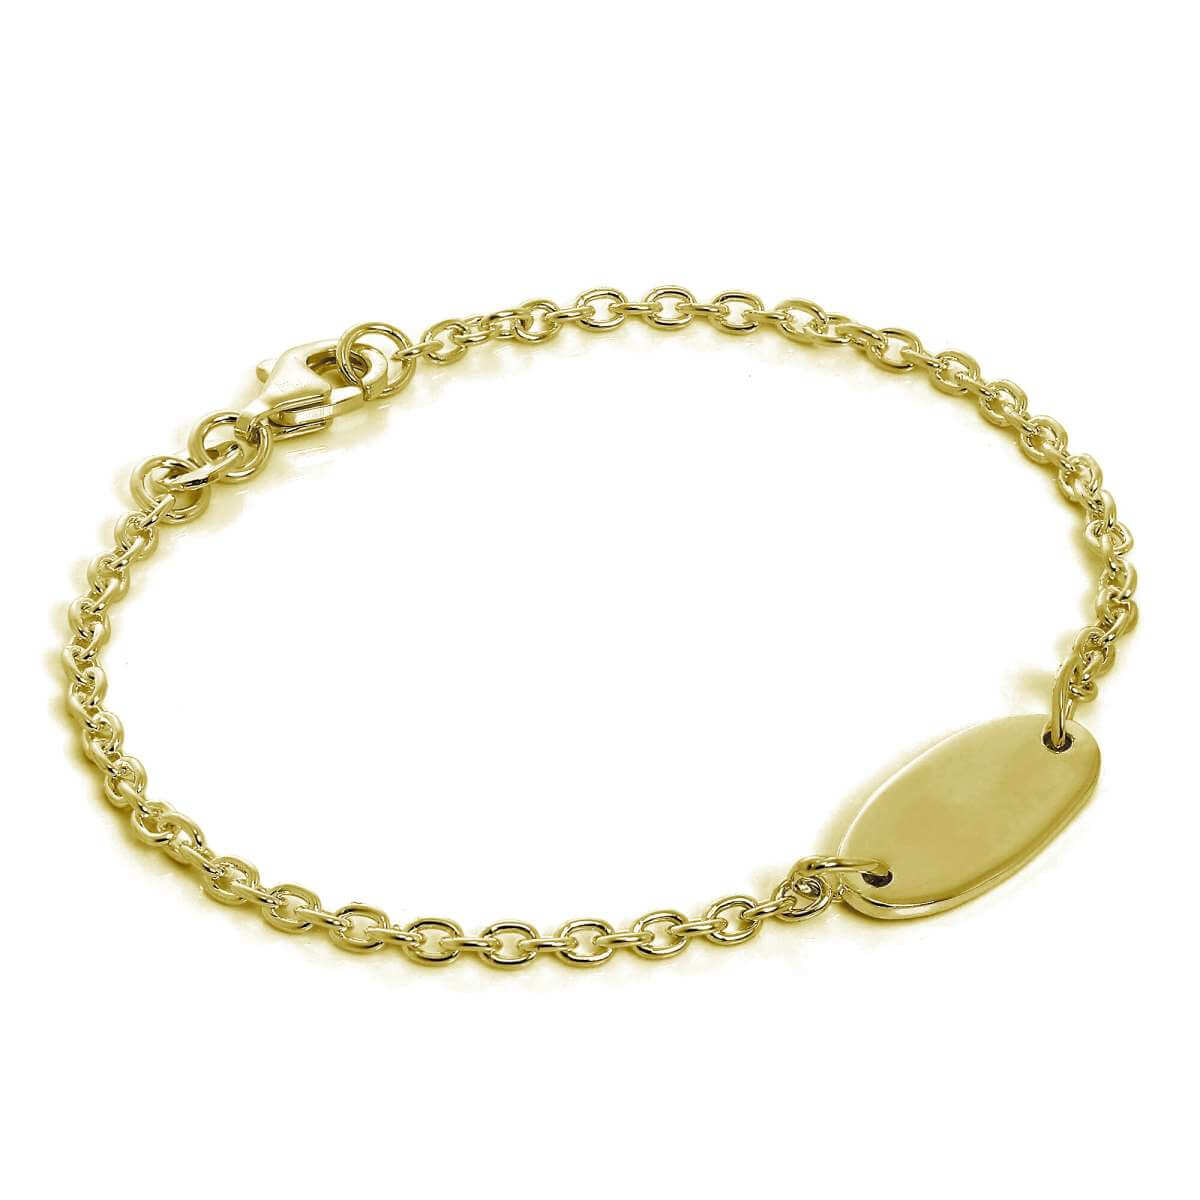 Gold Plated Sterling Silver ID Bracelet 6 Inches